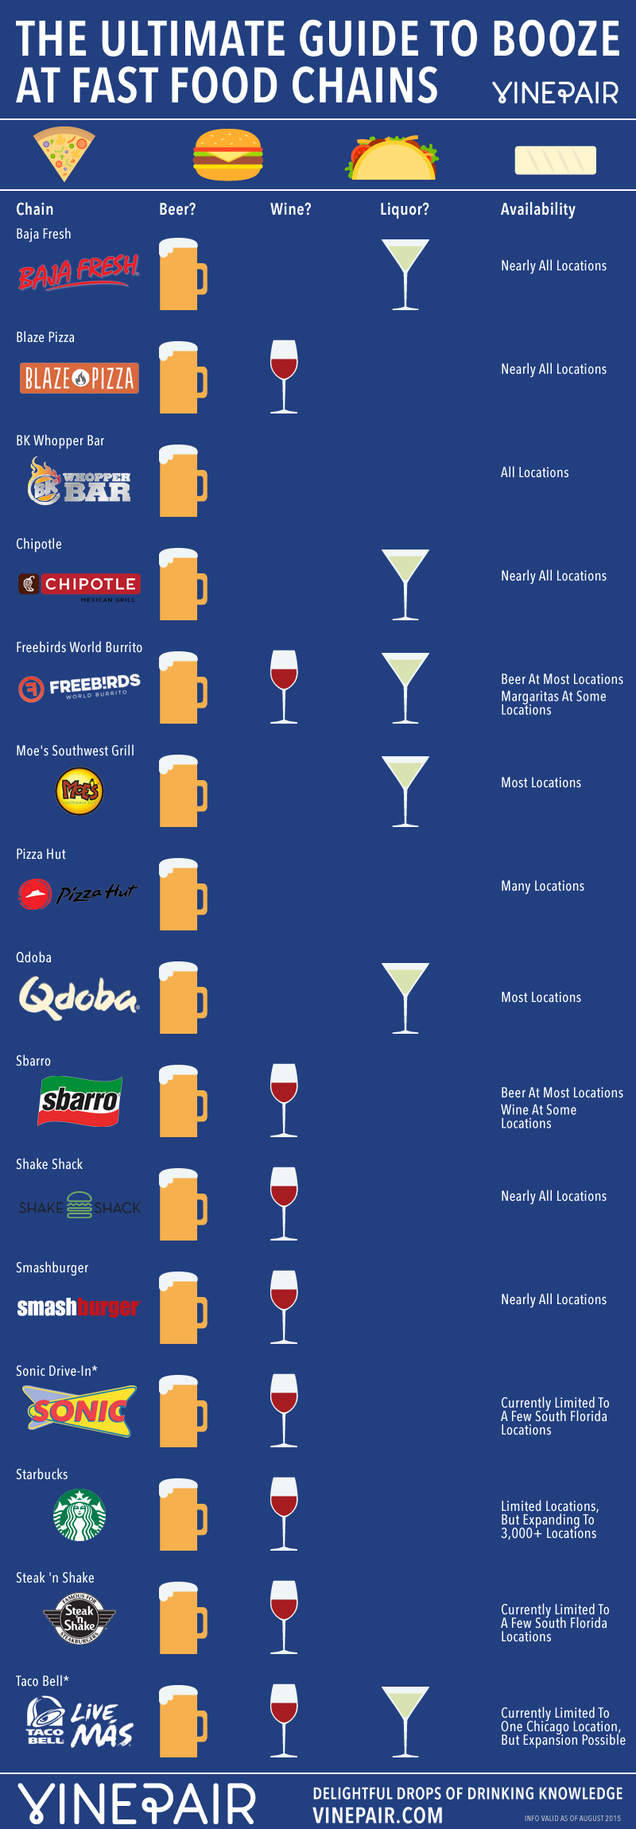 This Infographic Shows Which Fast Food Chains Serve Alcoholic Beverages